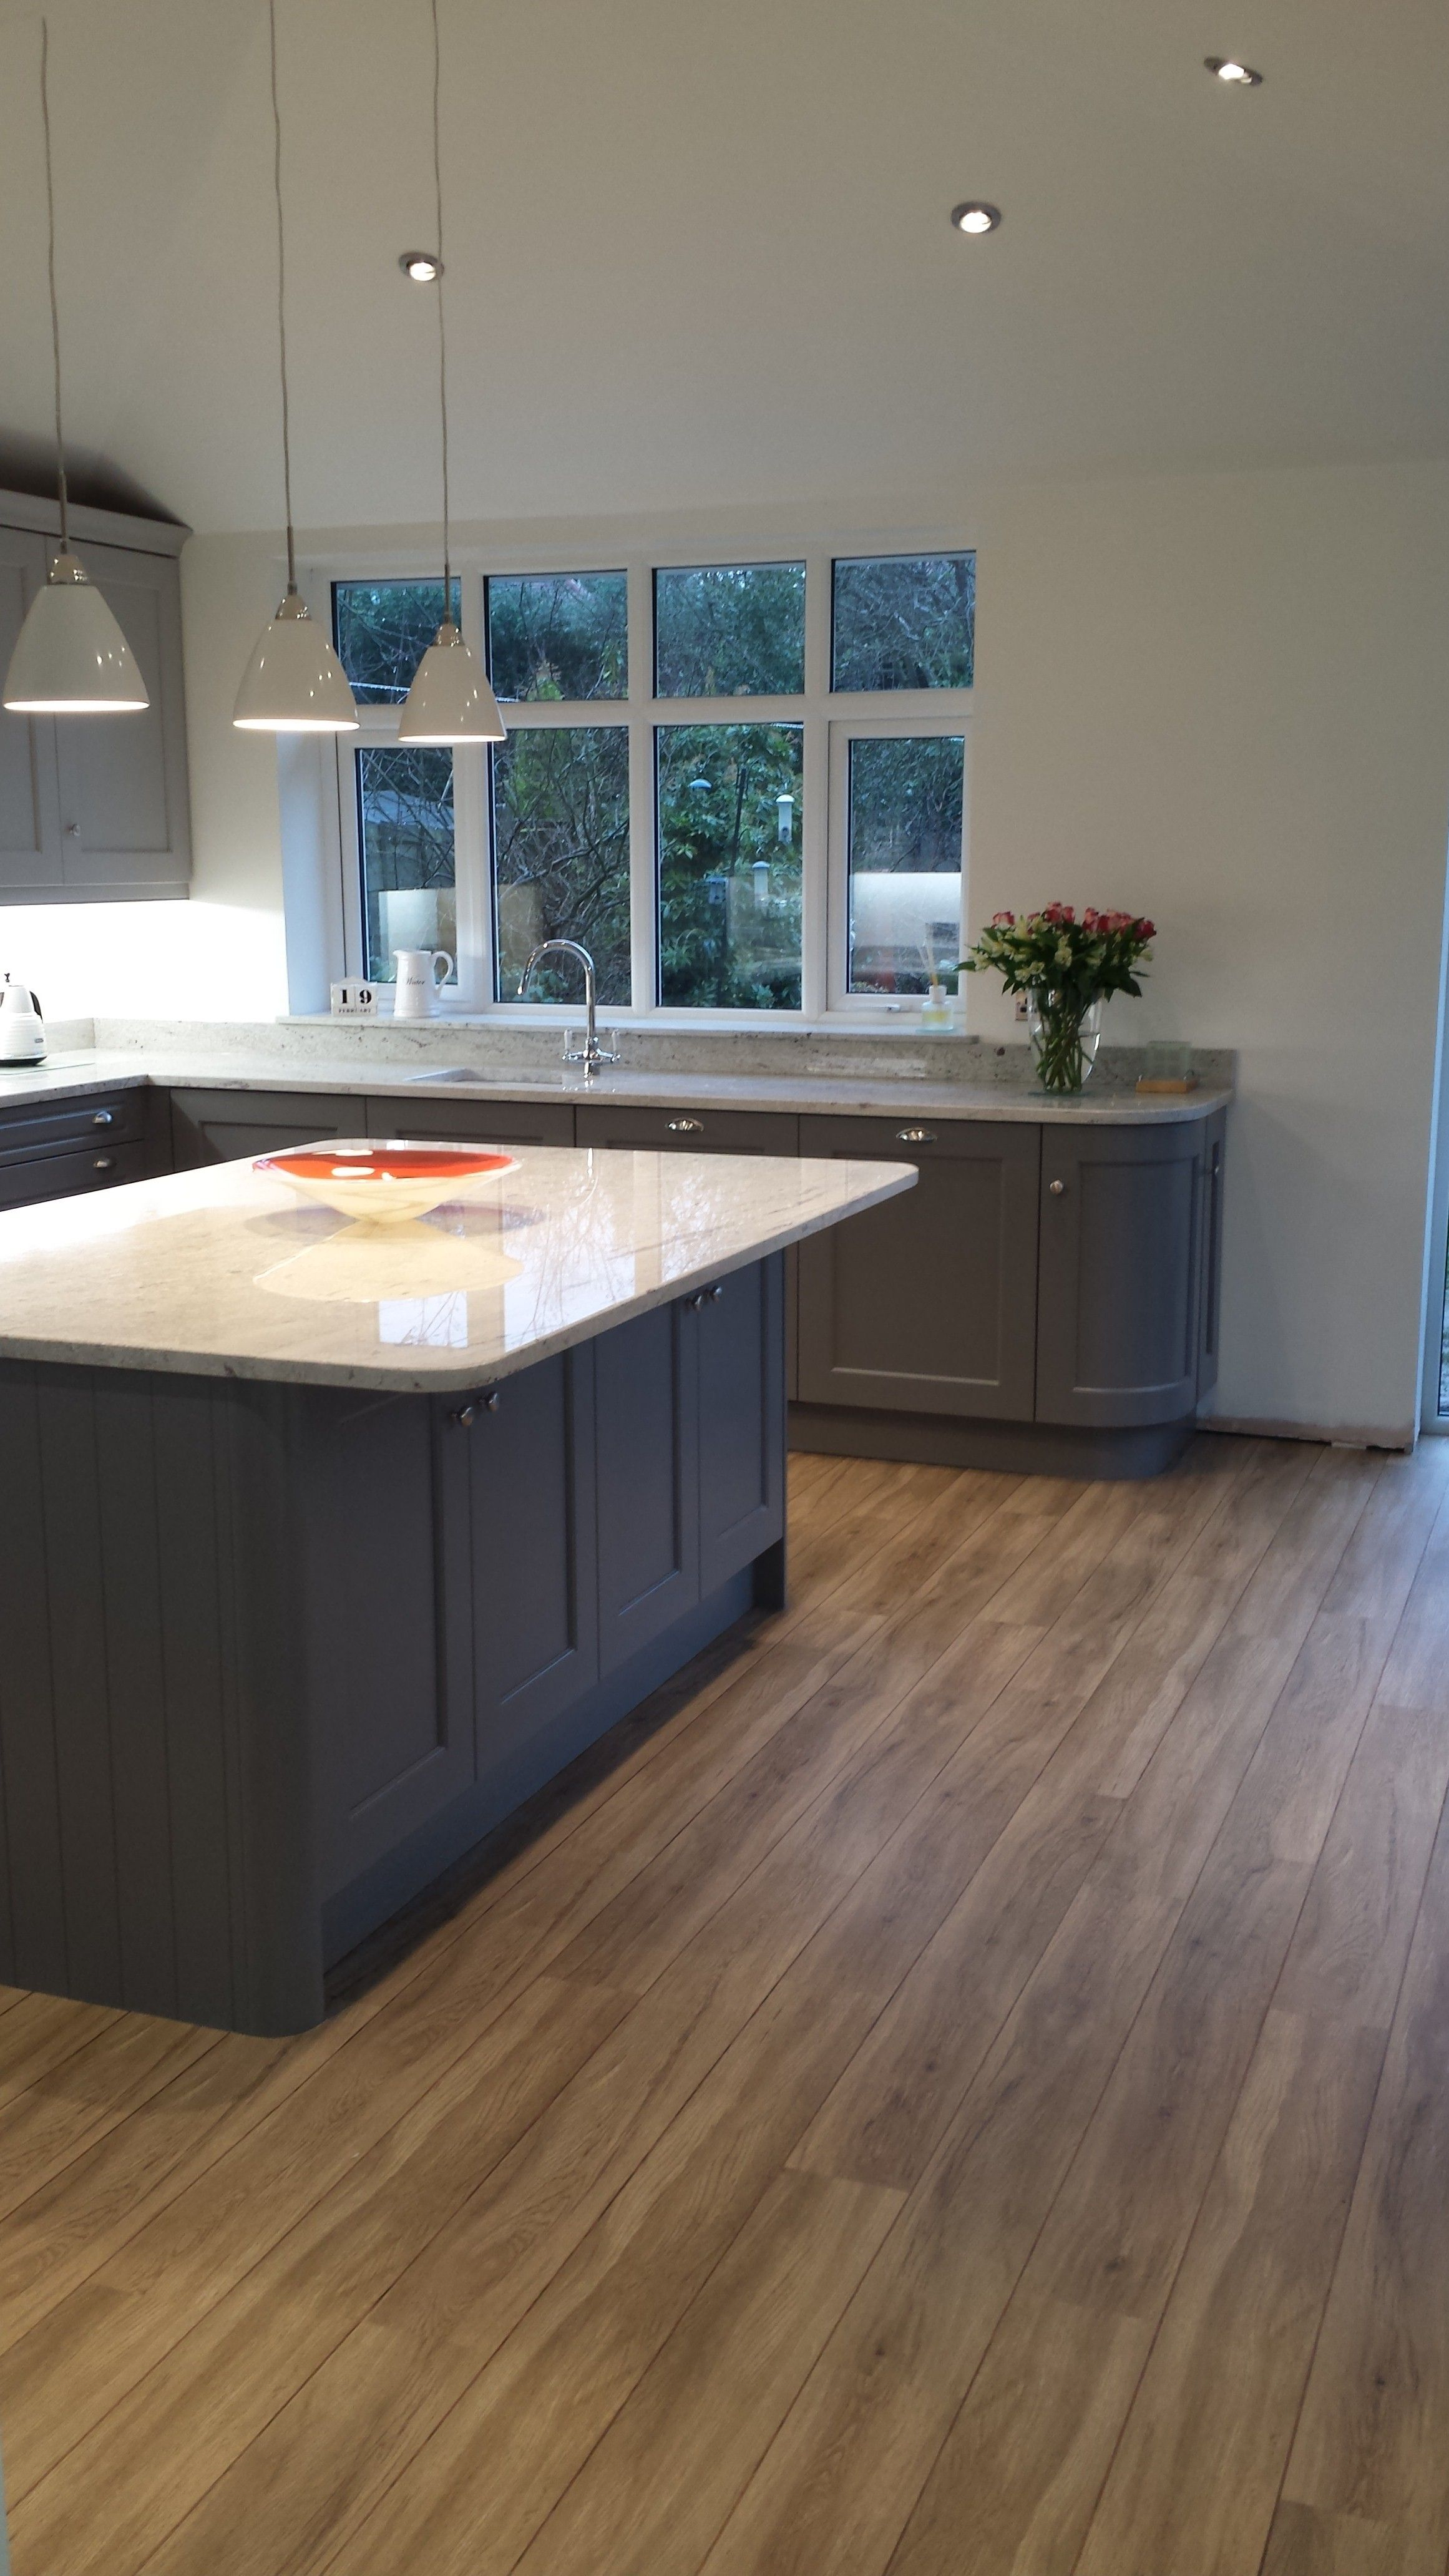 Howdens Kitchen Base Cabinets My Kitchen Units Painted In Farrow And Ball Moles Breath